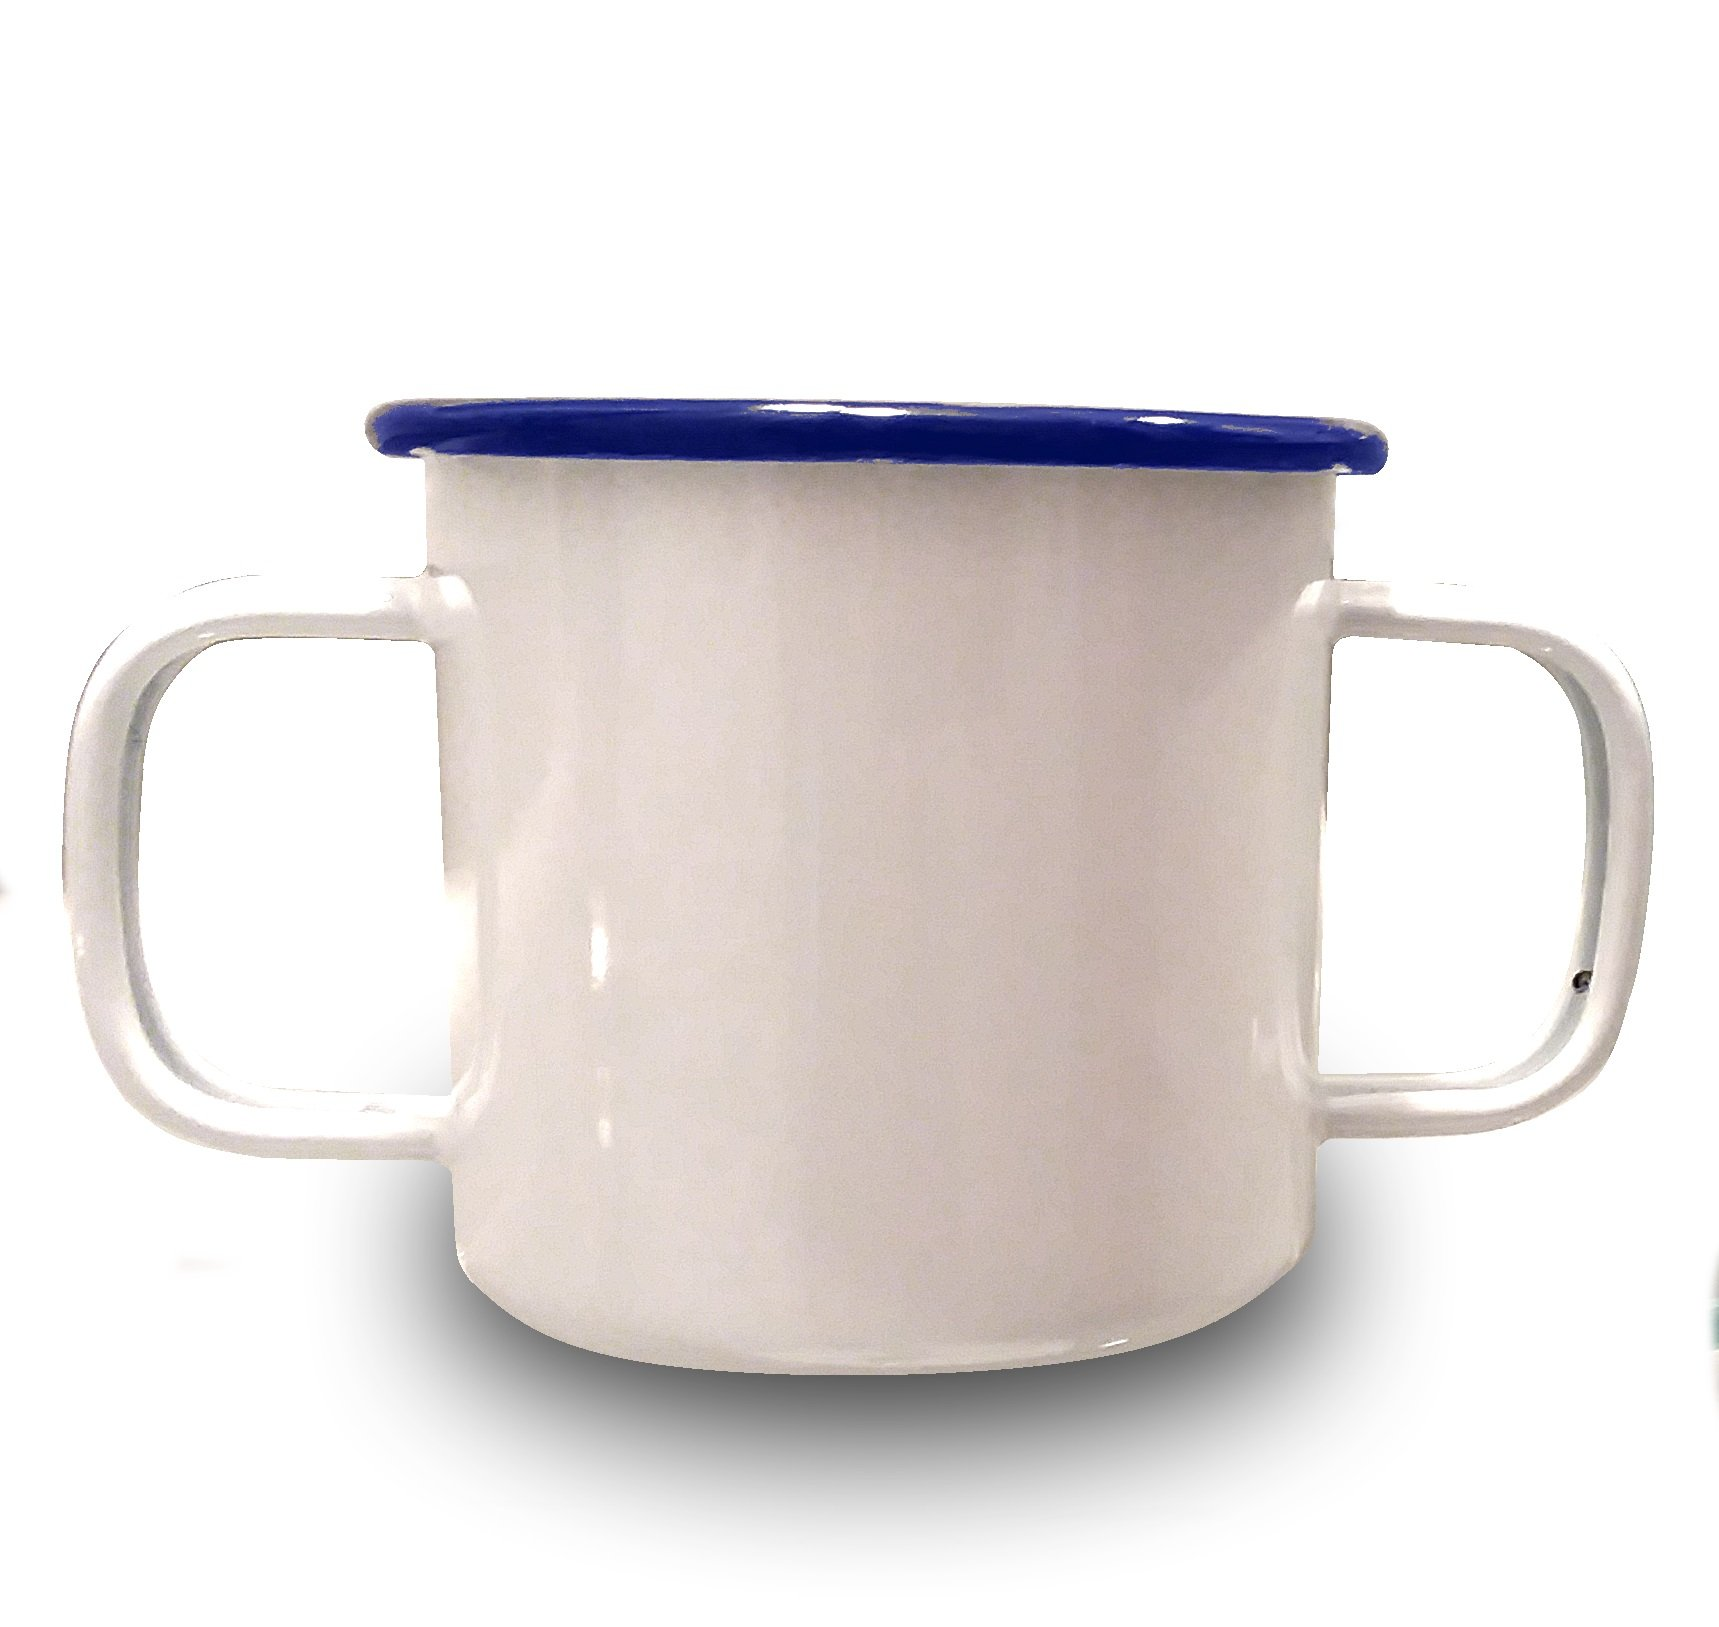 Two-Handled Steel 16 Ounce Cup for Easy Drinking with Essential Tremors and Arthritis